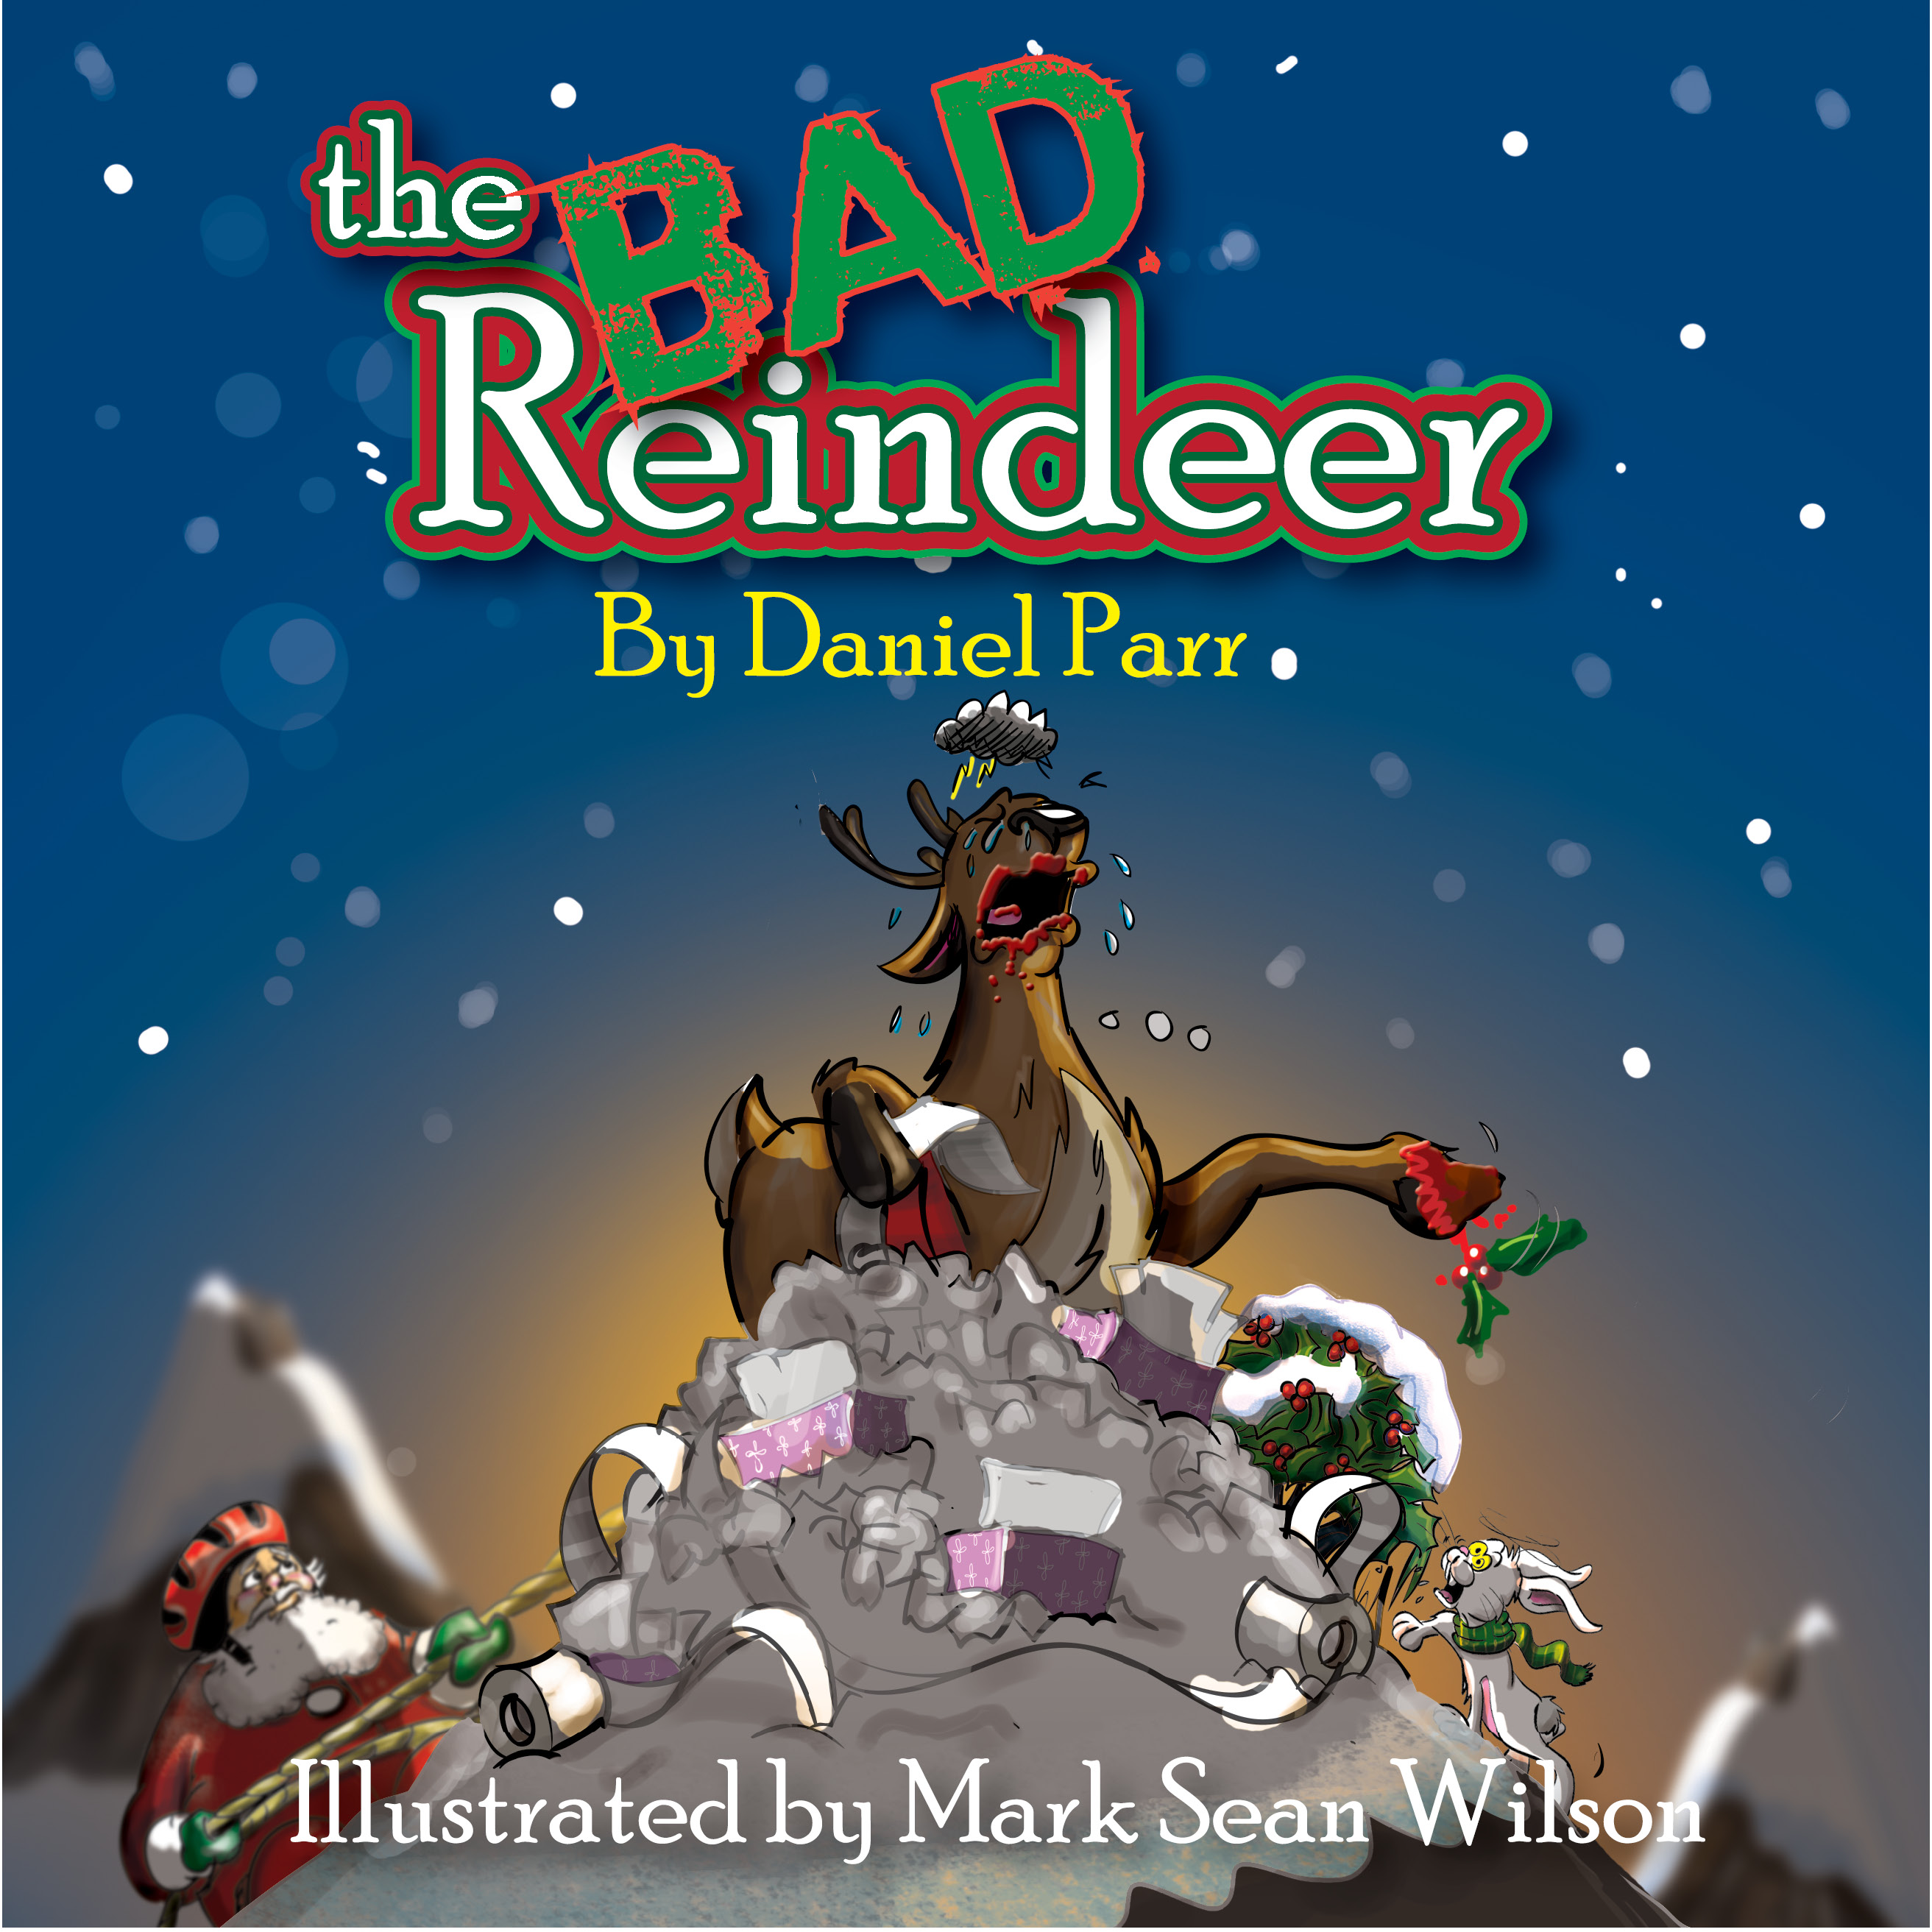 THE BAD REINDEER (BOOK print no marks)